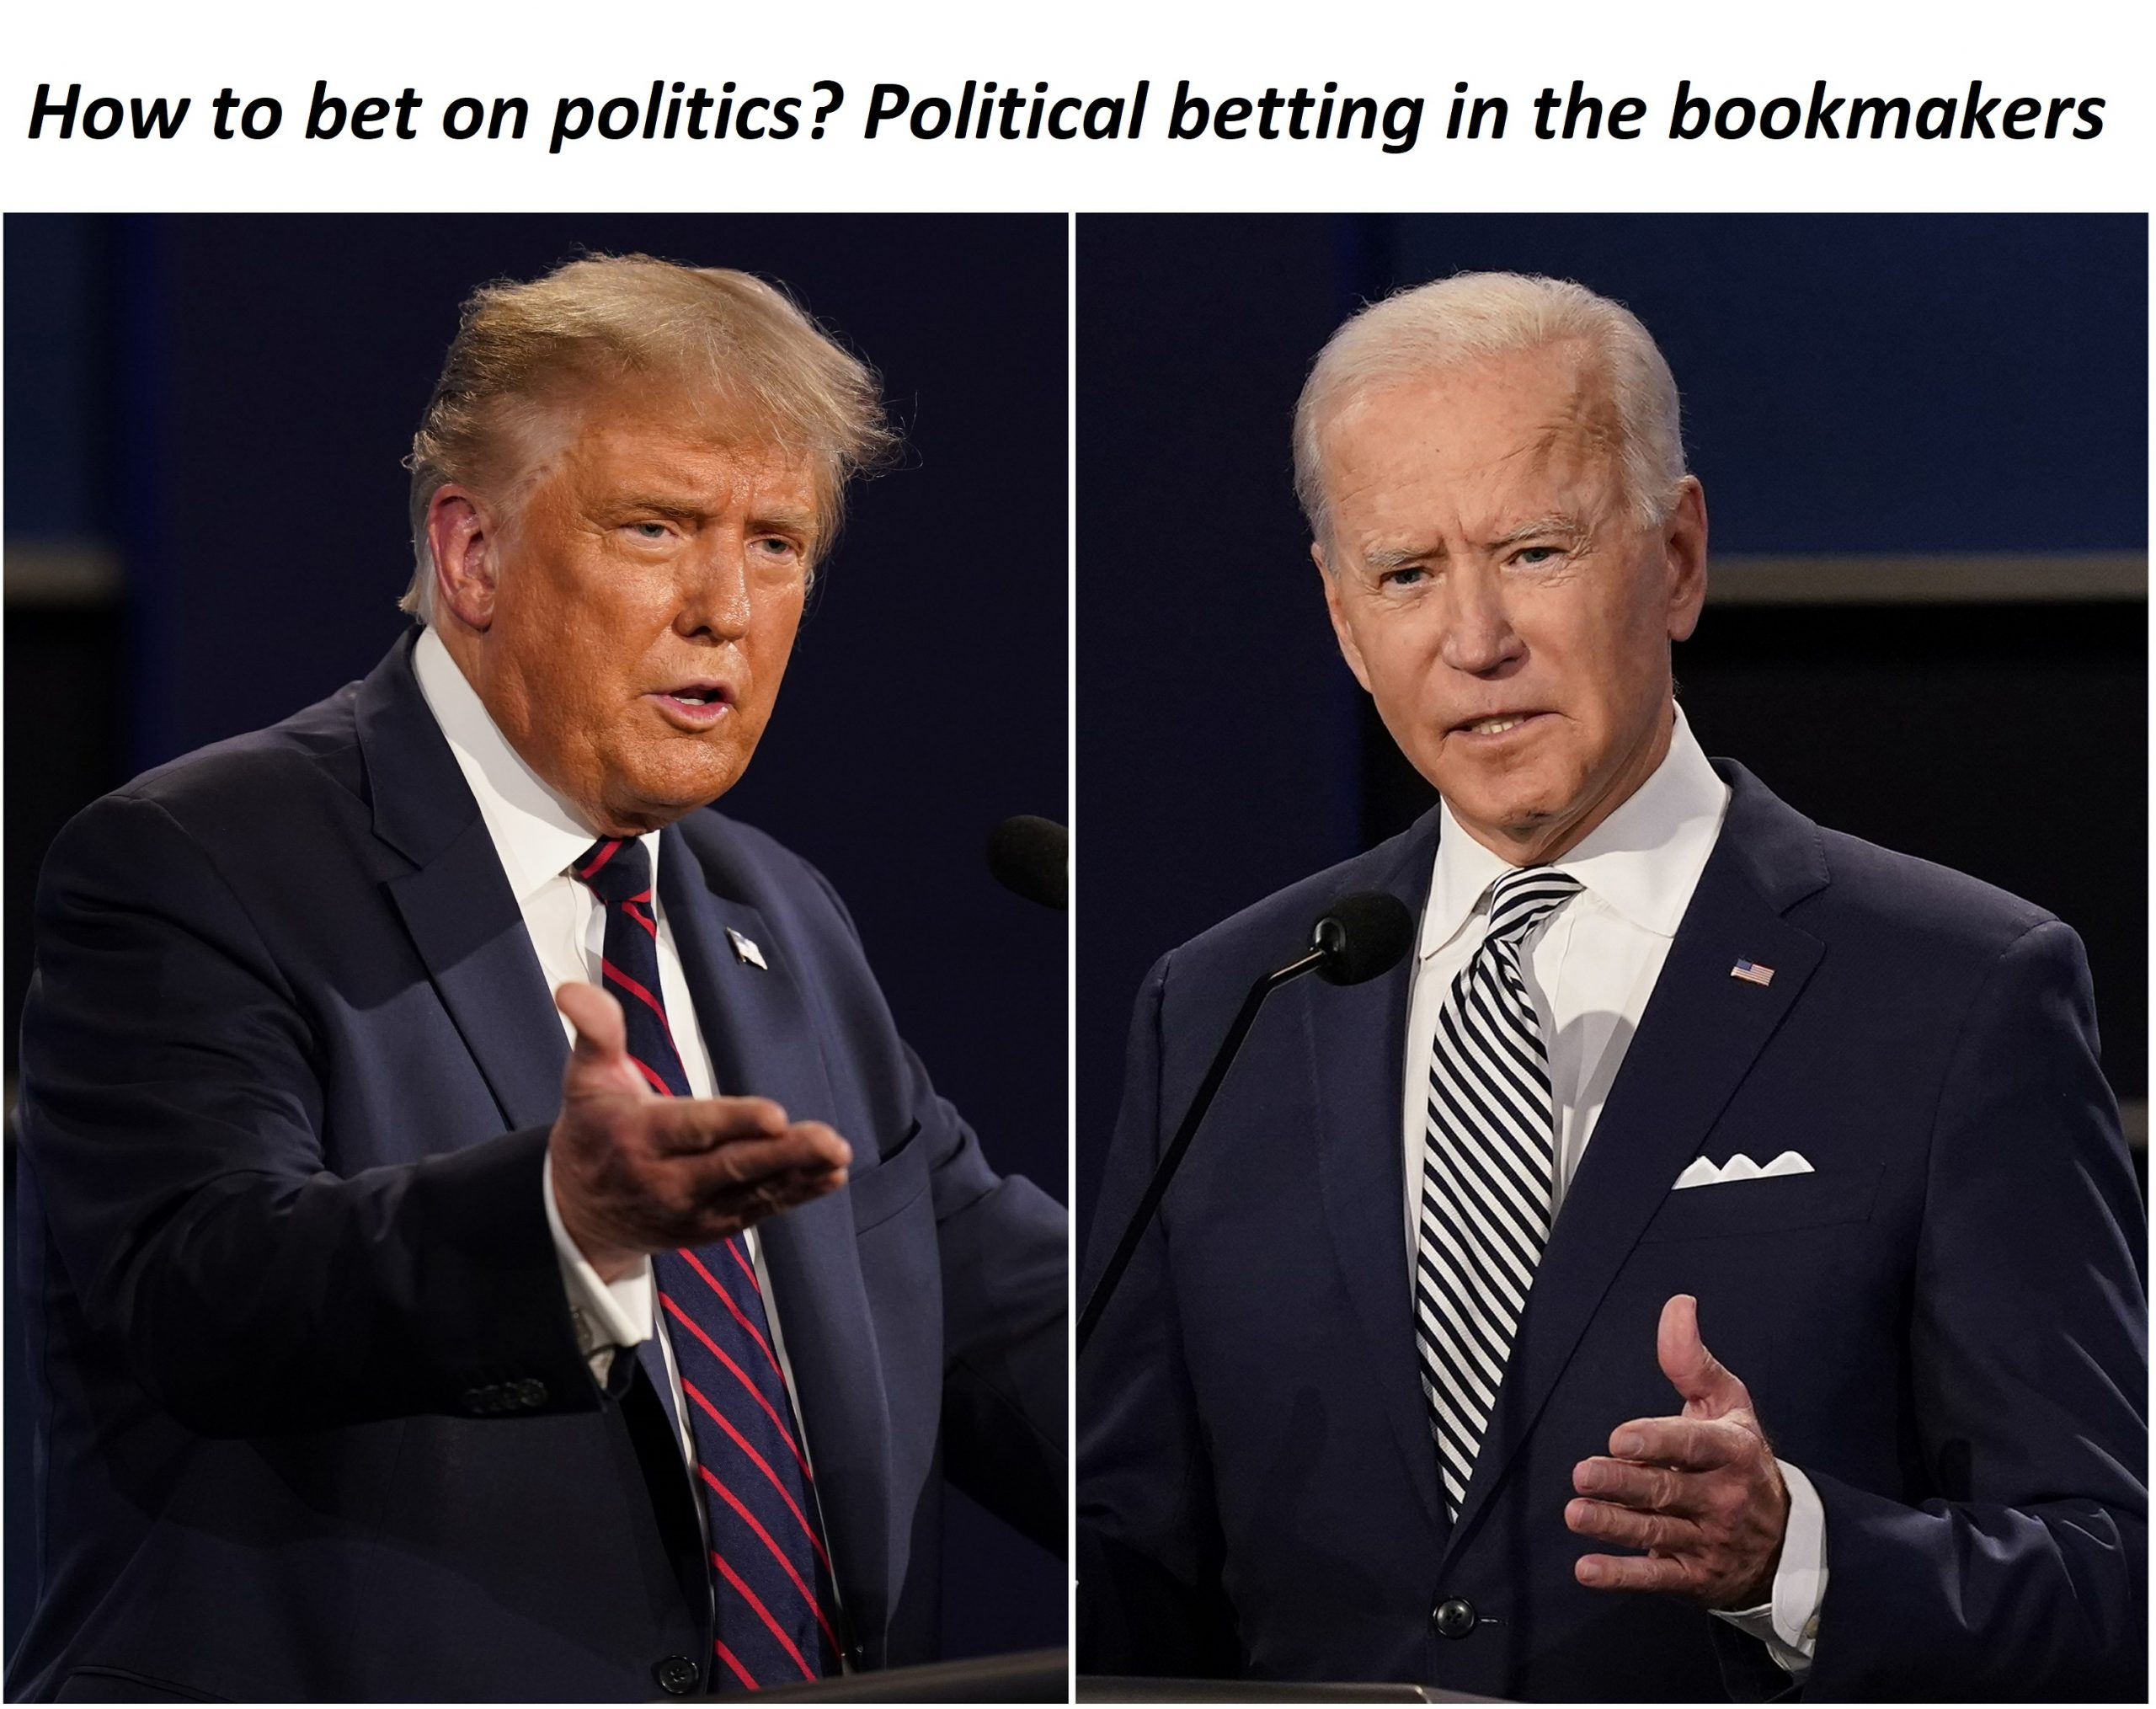 Political betting - how to bet on politics